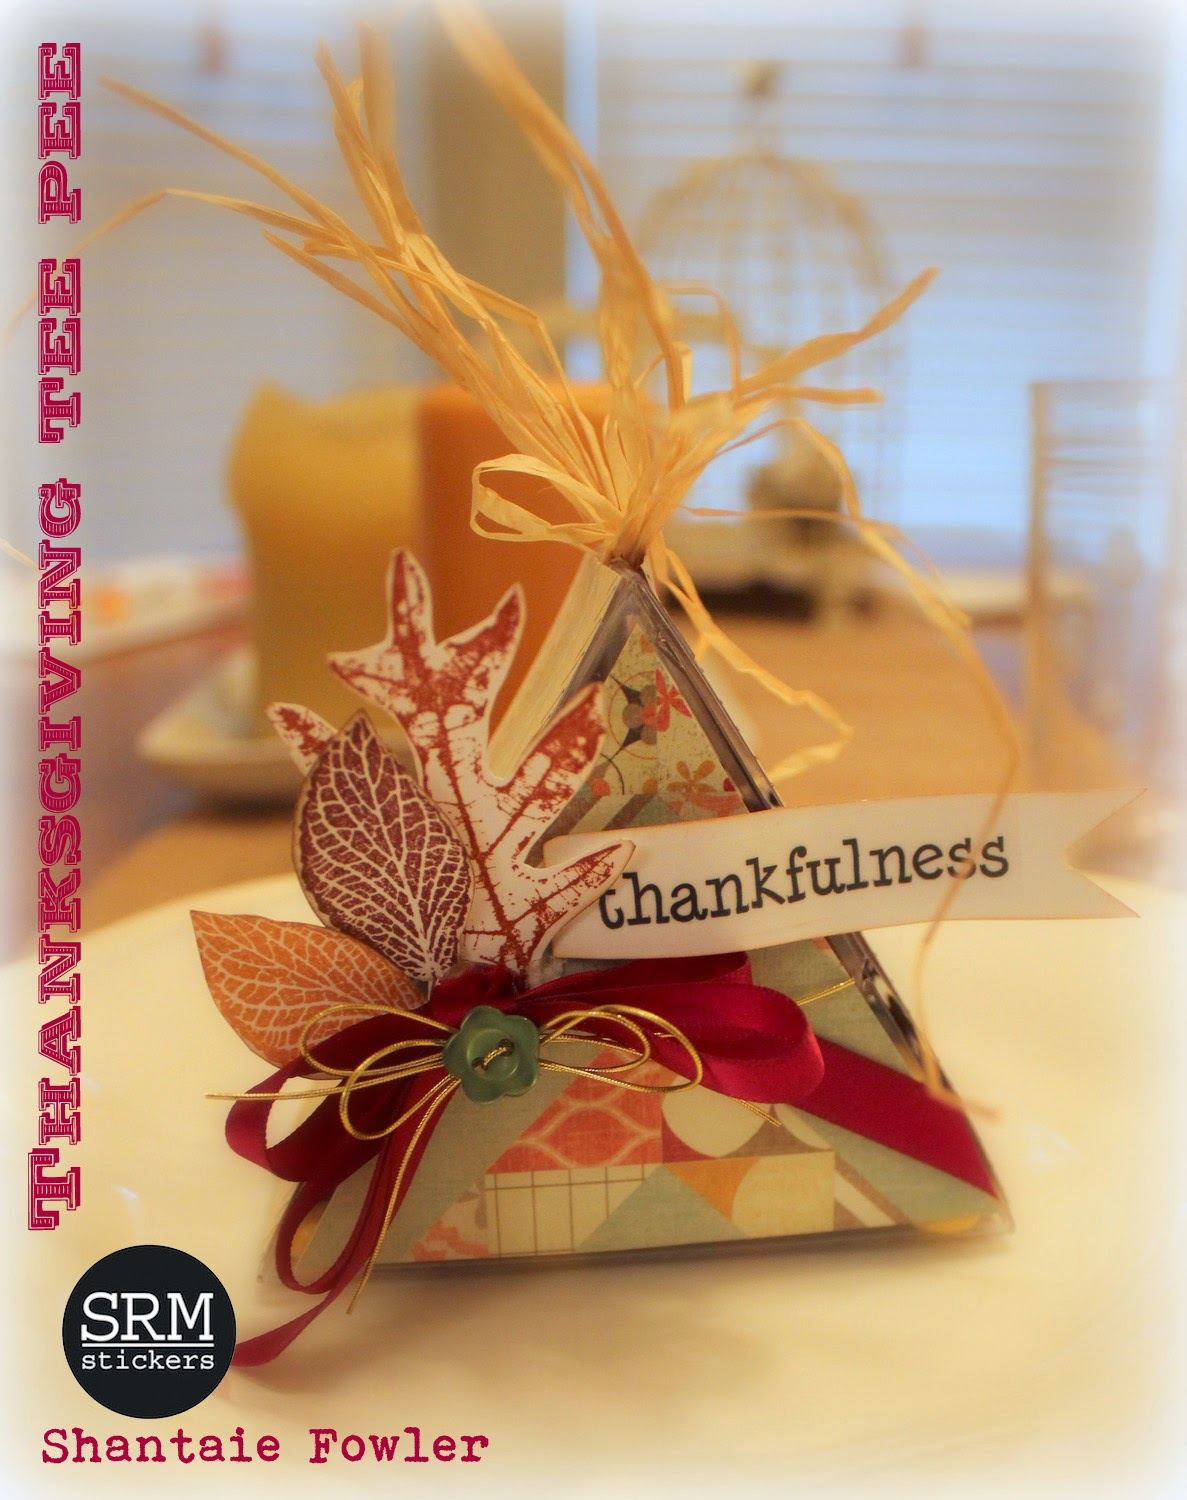 SRM Stickers - Thanksgiving Table Decor by Shantaie - #srmstickers #stickers #thanksgiving #trinagle #clear box